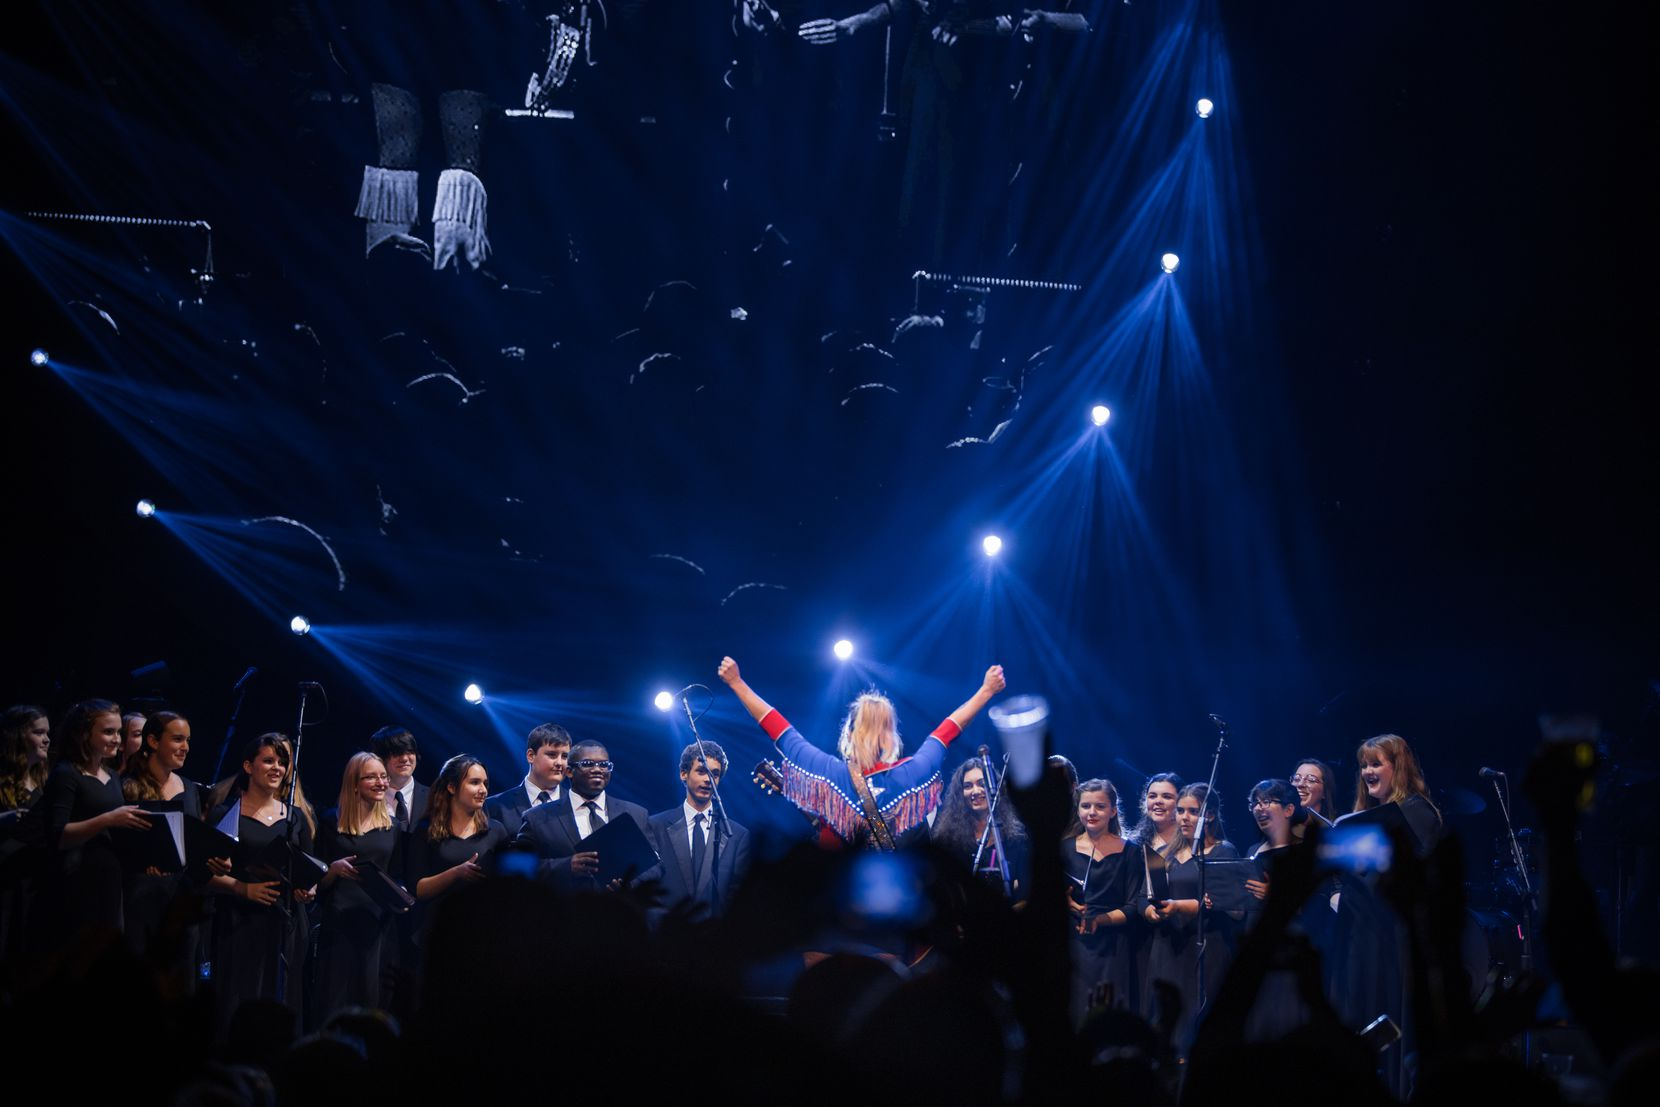 Miranda Lambert performs with members of the Lindale High School choir at American Airlines Center on Feb. 8, 2020 in Dallas.